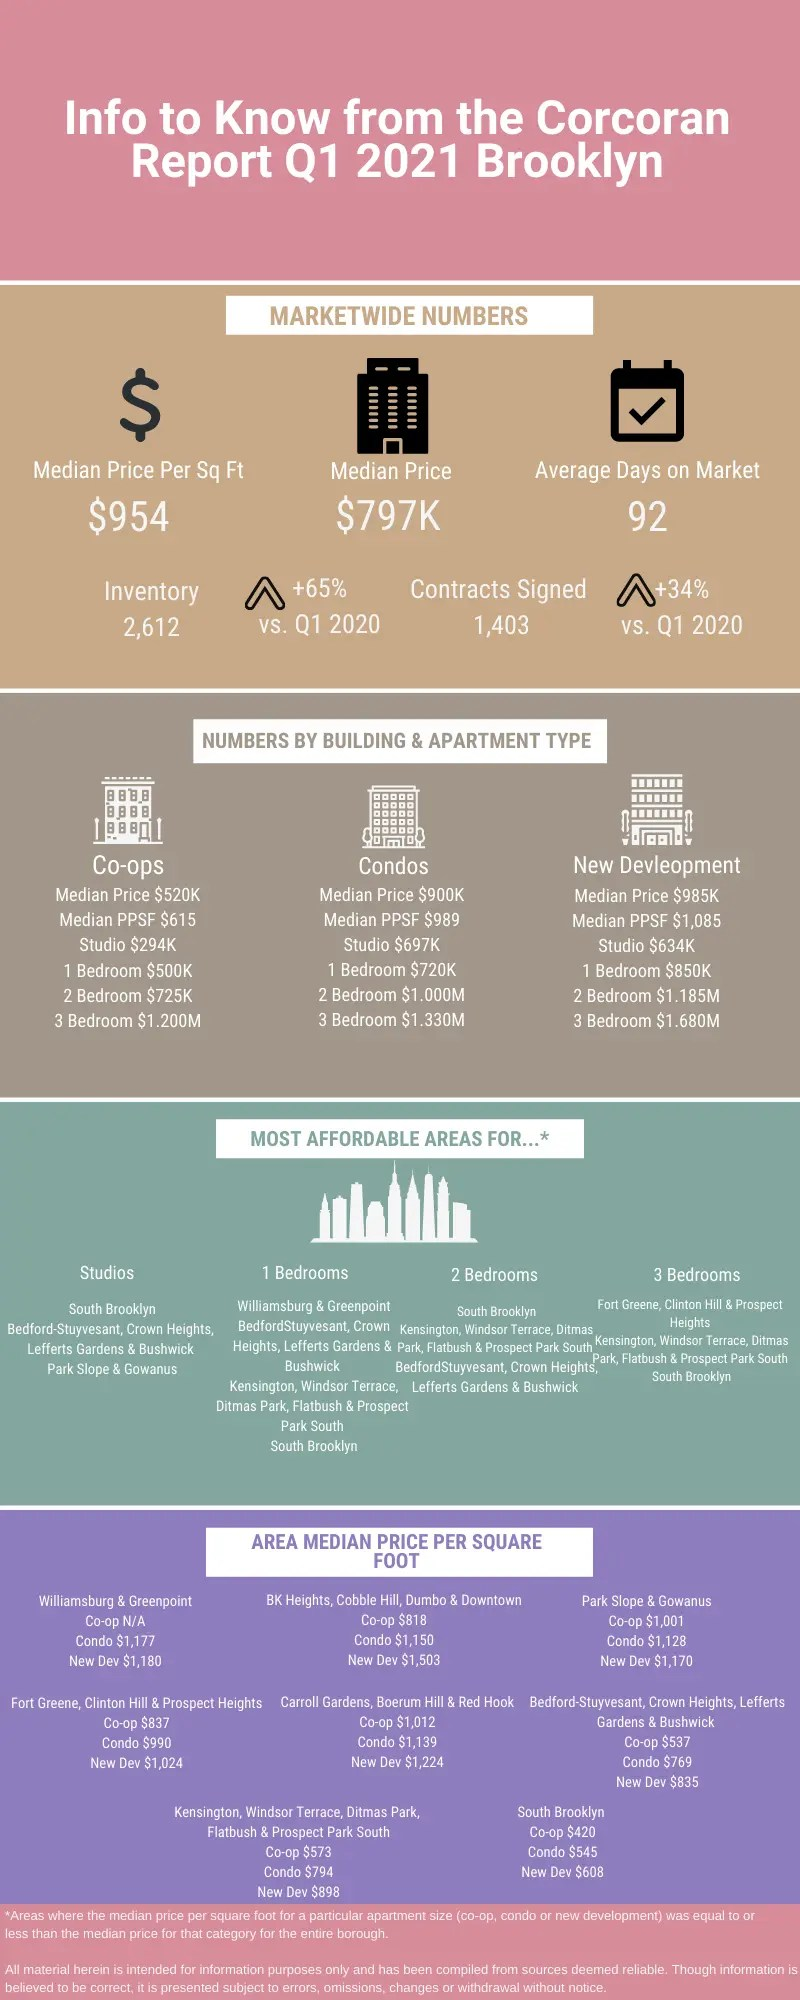 Infographic showing information from the Q1 2021 real estate market update from Corcoran for Brooklyn